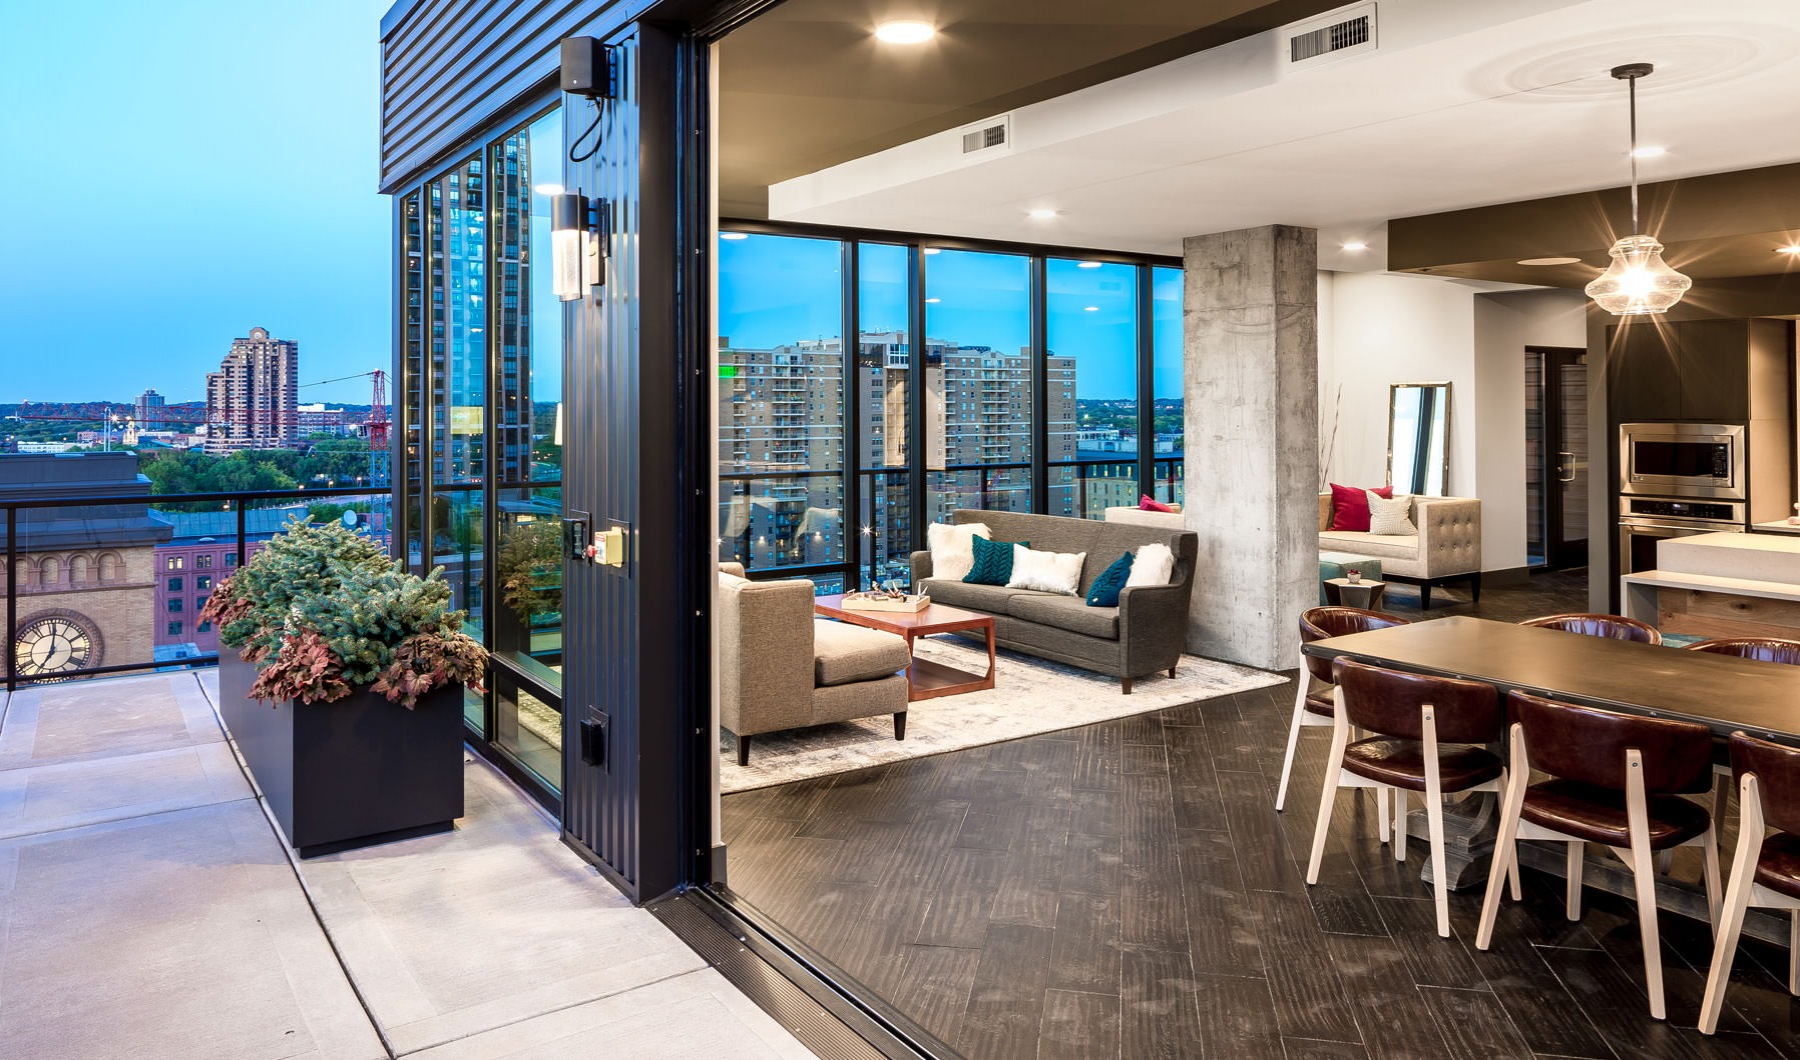 NOW LEASING LUXURY MINNEAPOLIS APARTMENTS